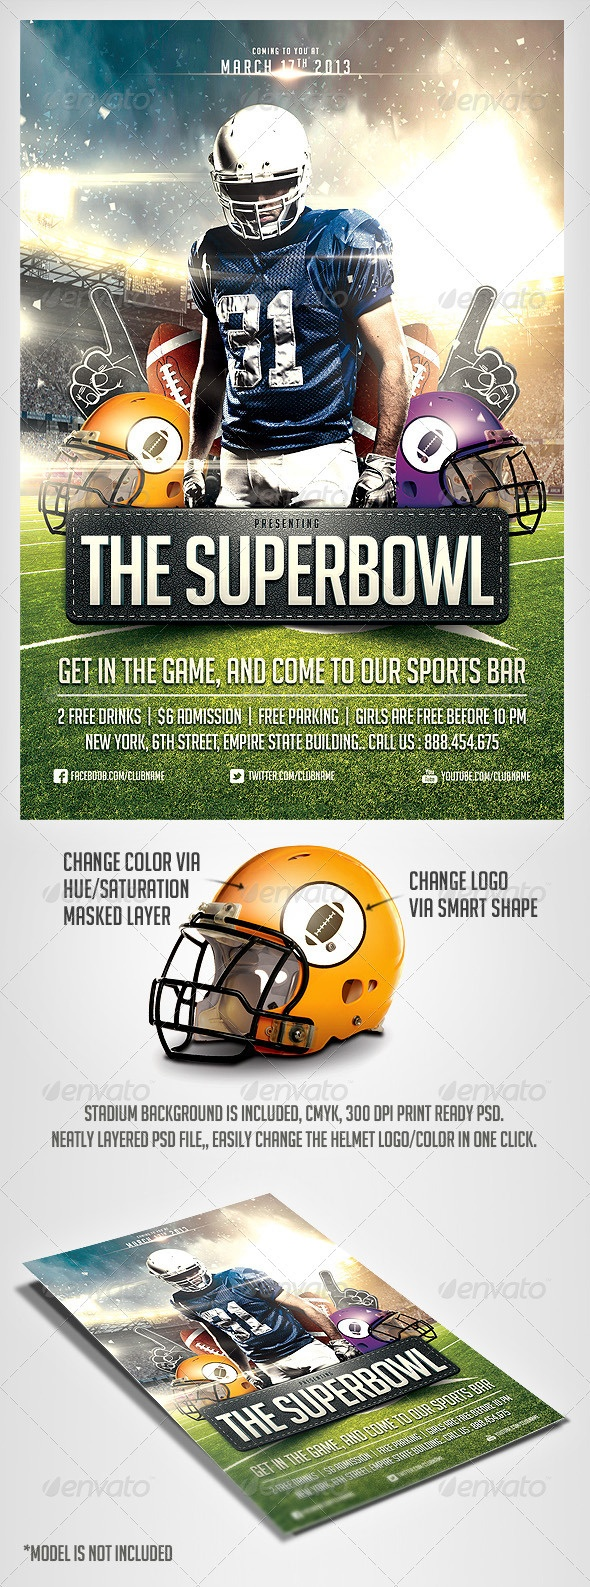 SuperBowl Football Flyer Template - GraphicRiver Item for Sale